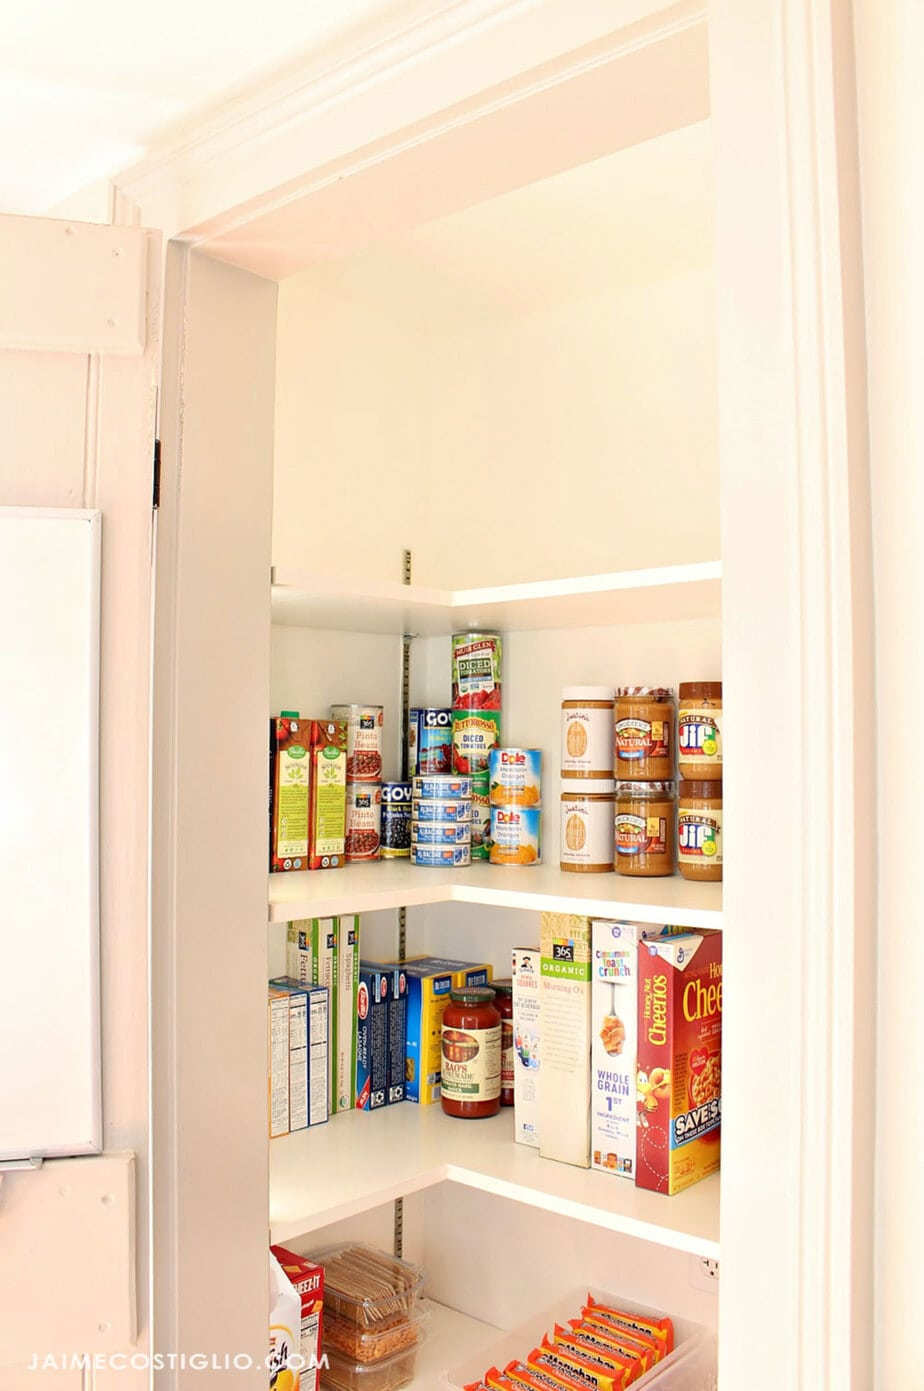 top pantry shelf space before